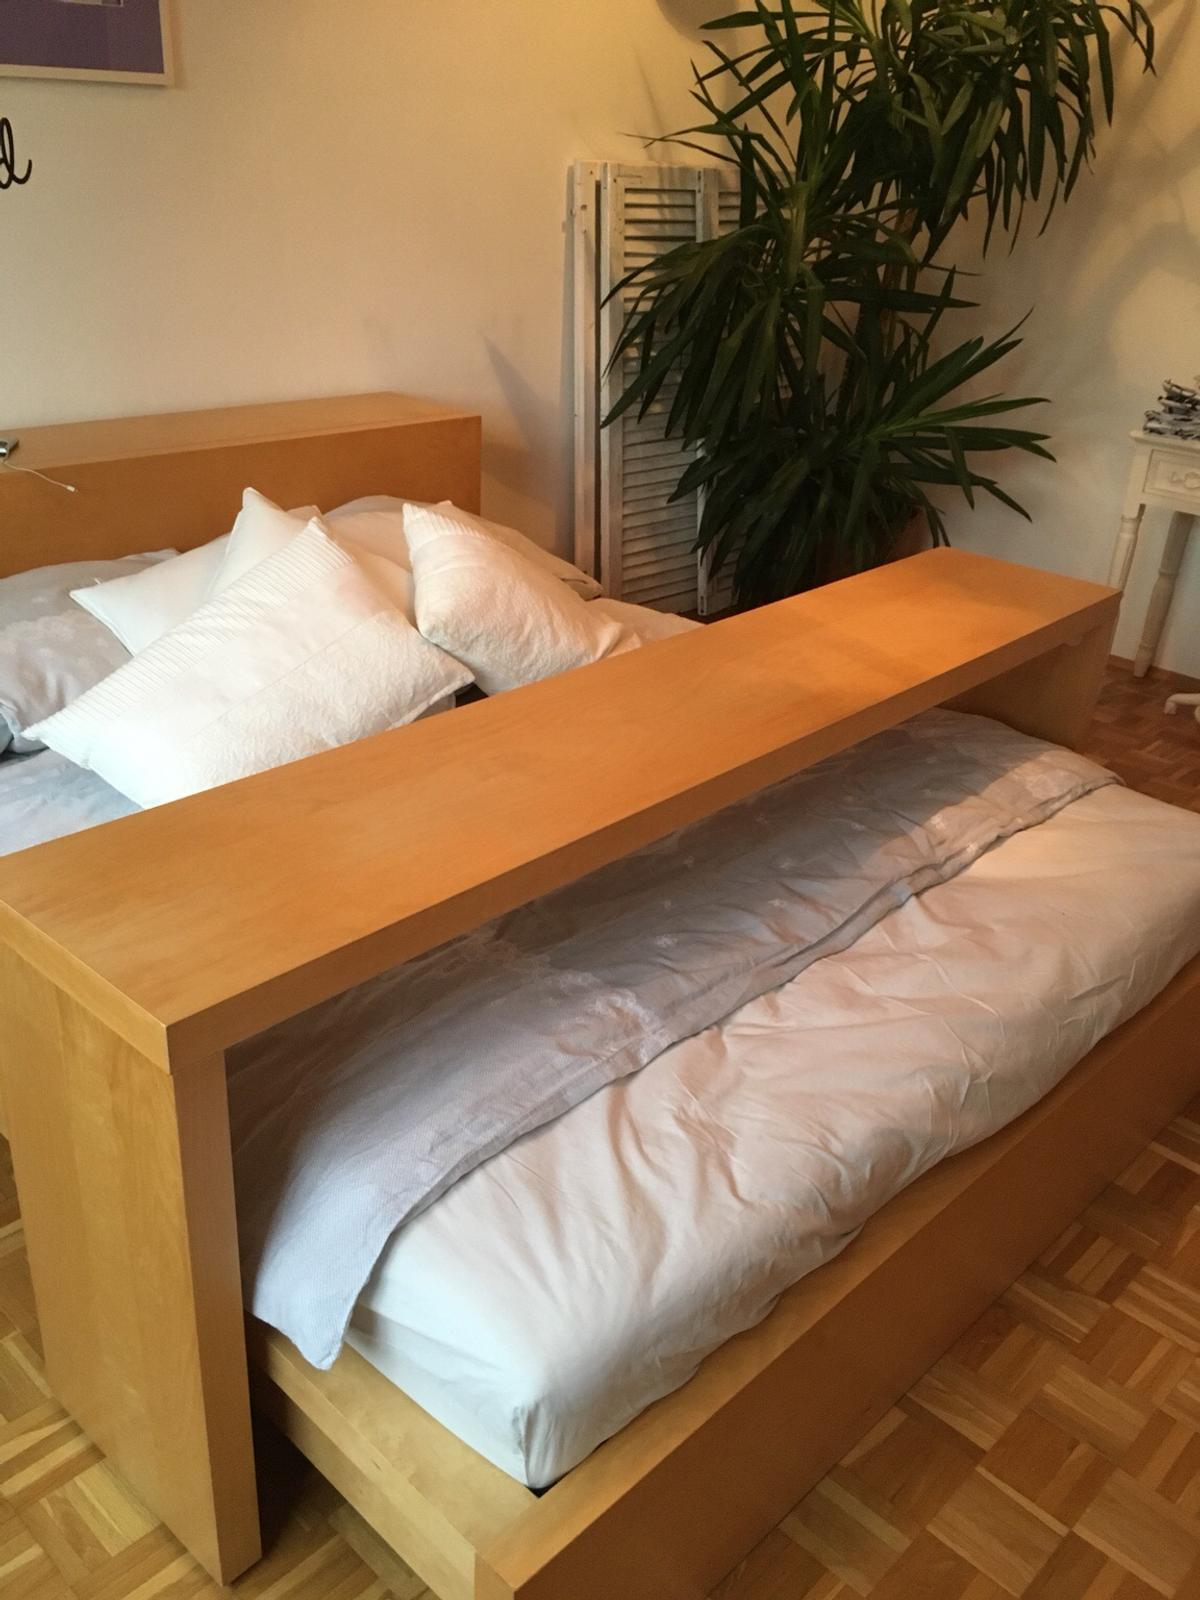 Ikea Leselampe Schlafzimmer Ikea Malm Tisch In 8010 Graz For €20.00 For Sale | Shpock